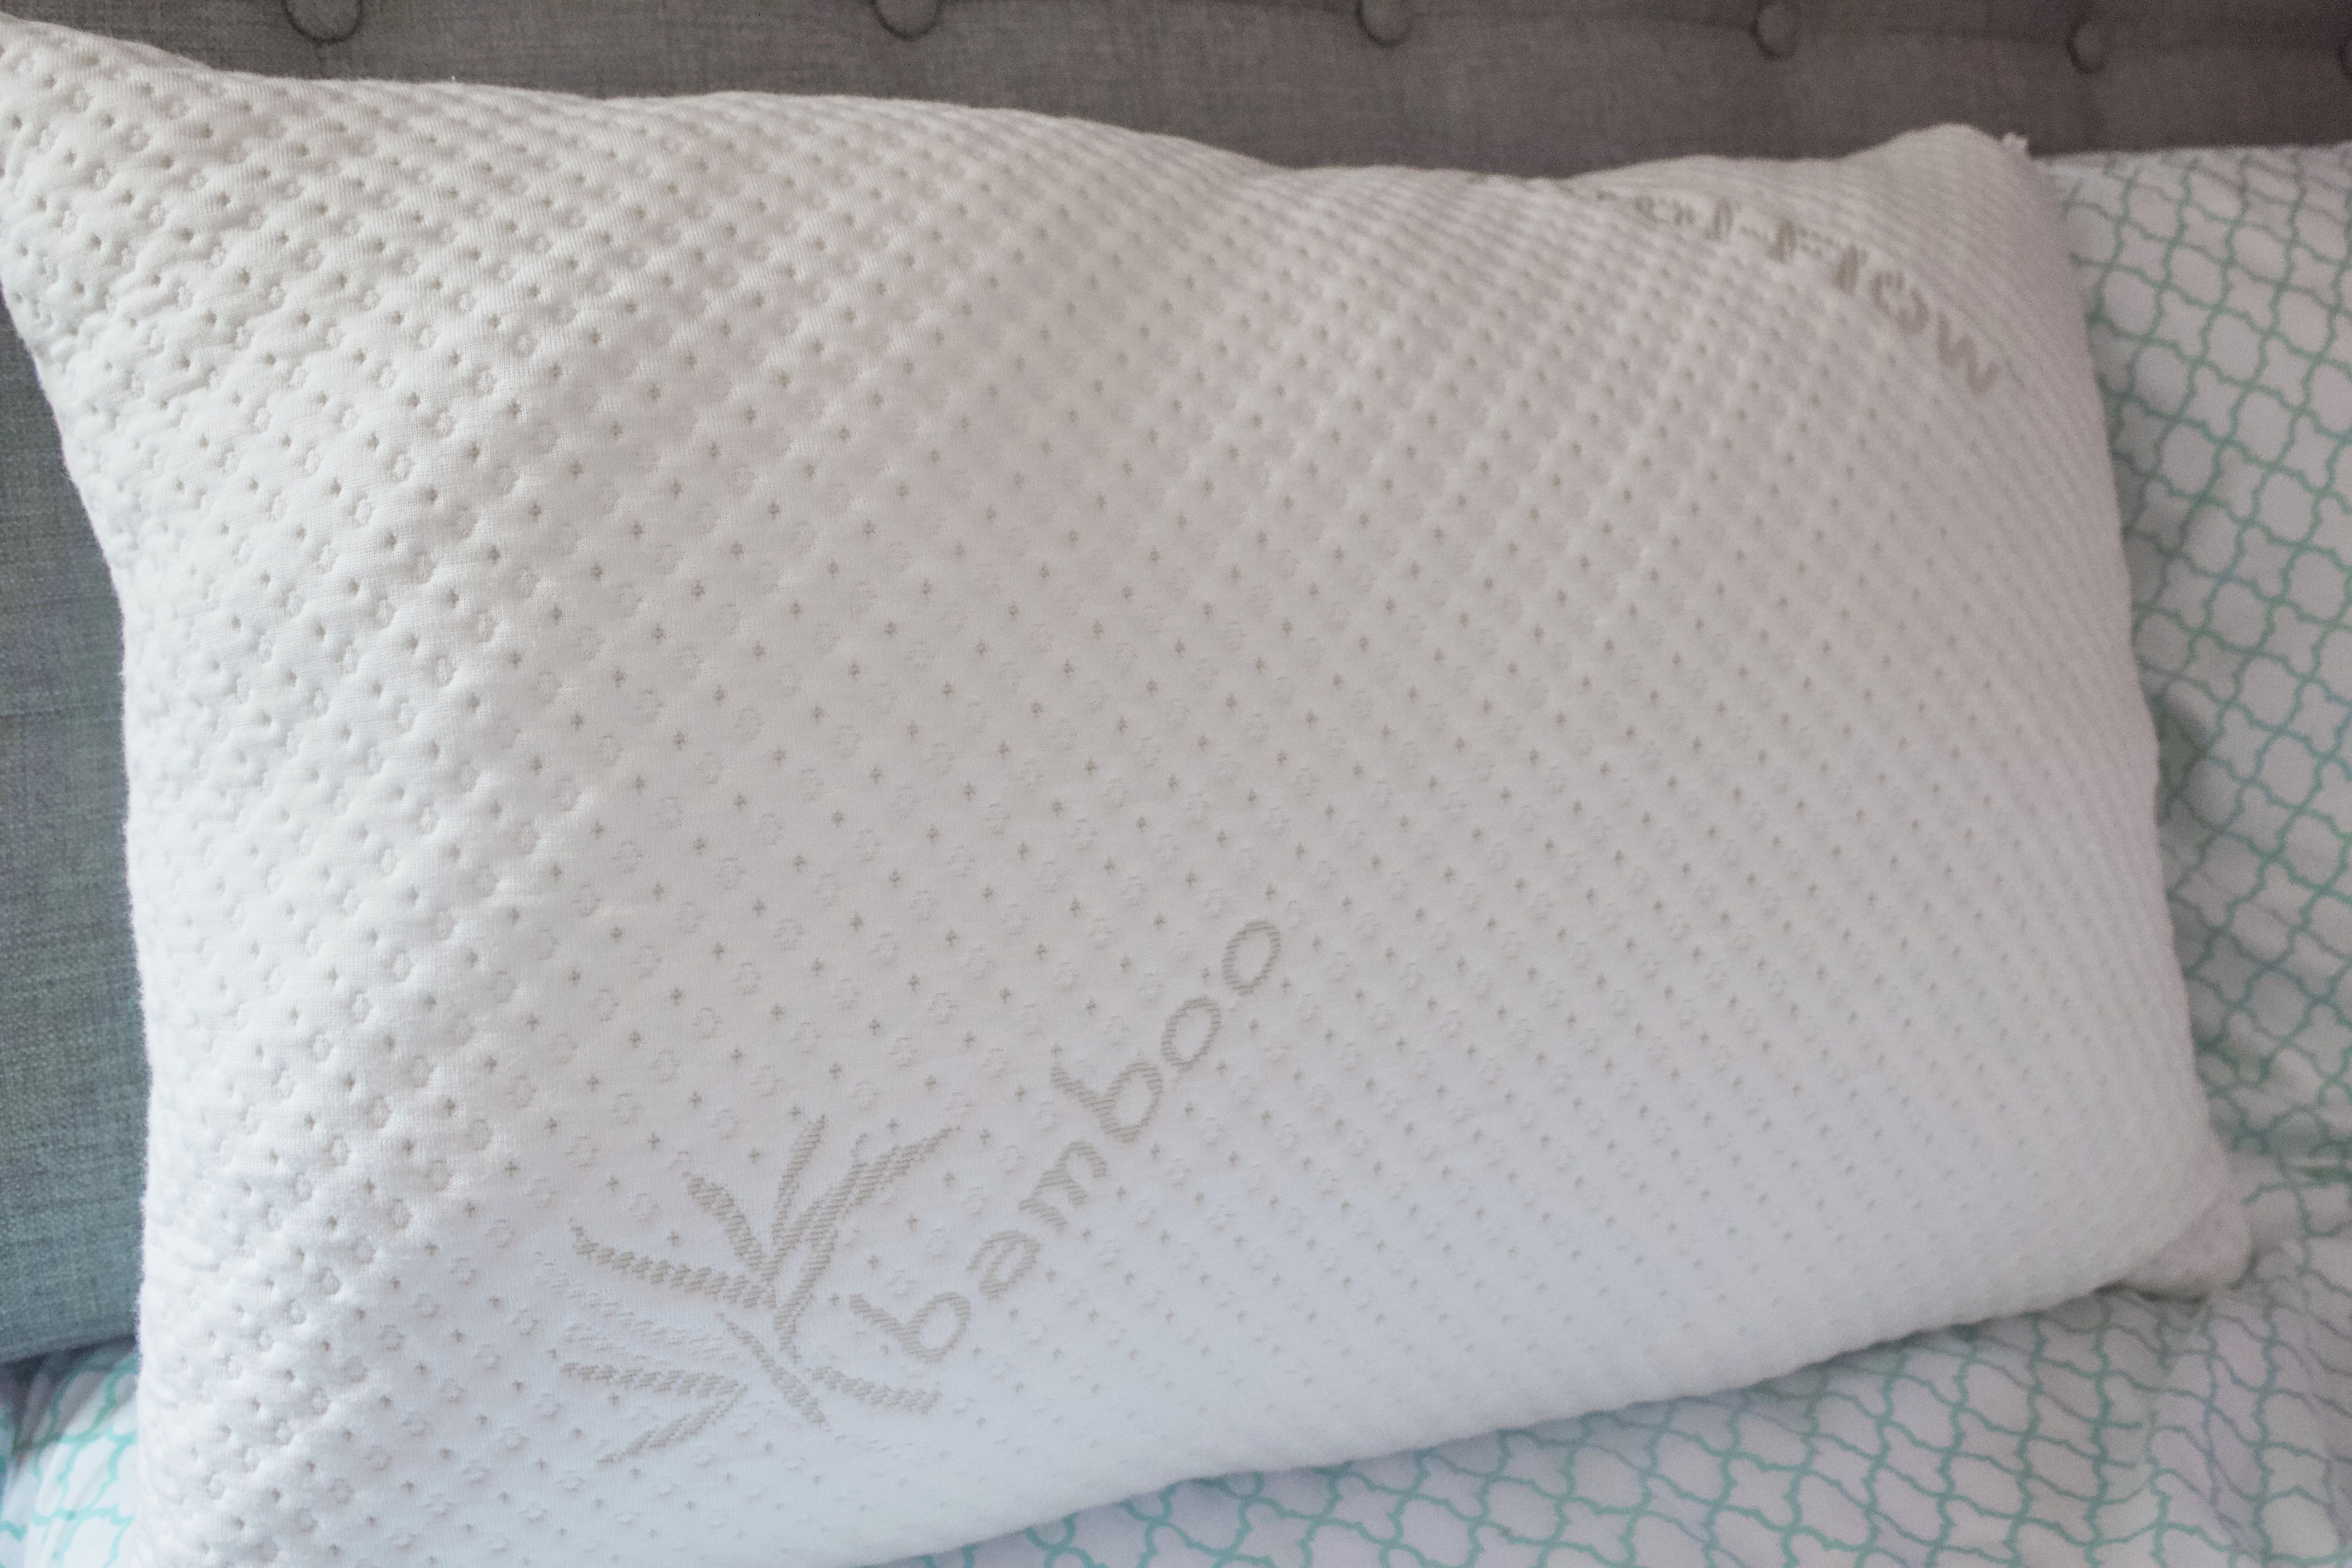 Queen Snuggle-Pedic Shredded Memory Foam Pillow w// Bamboo Ultra-Luxury Cover